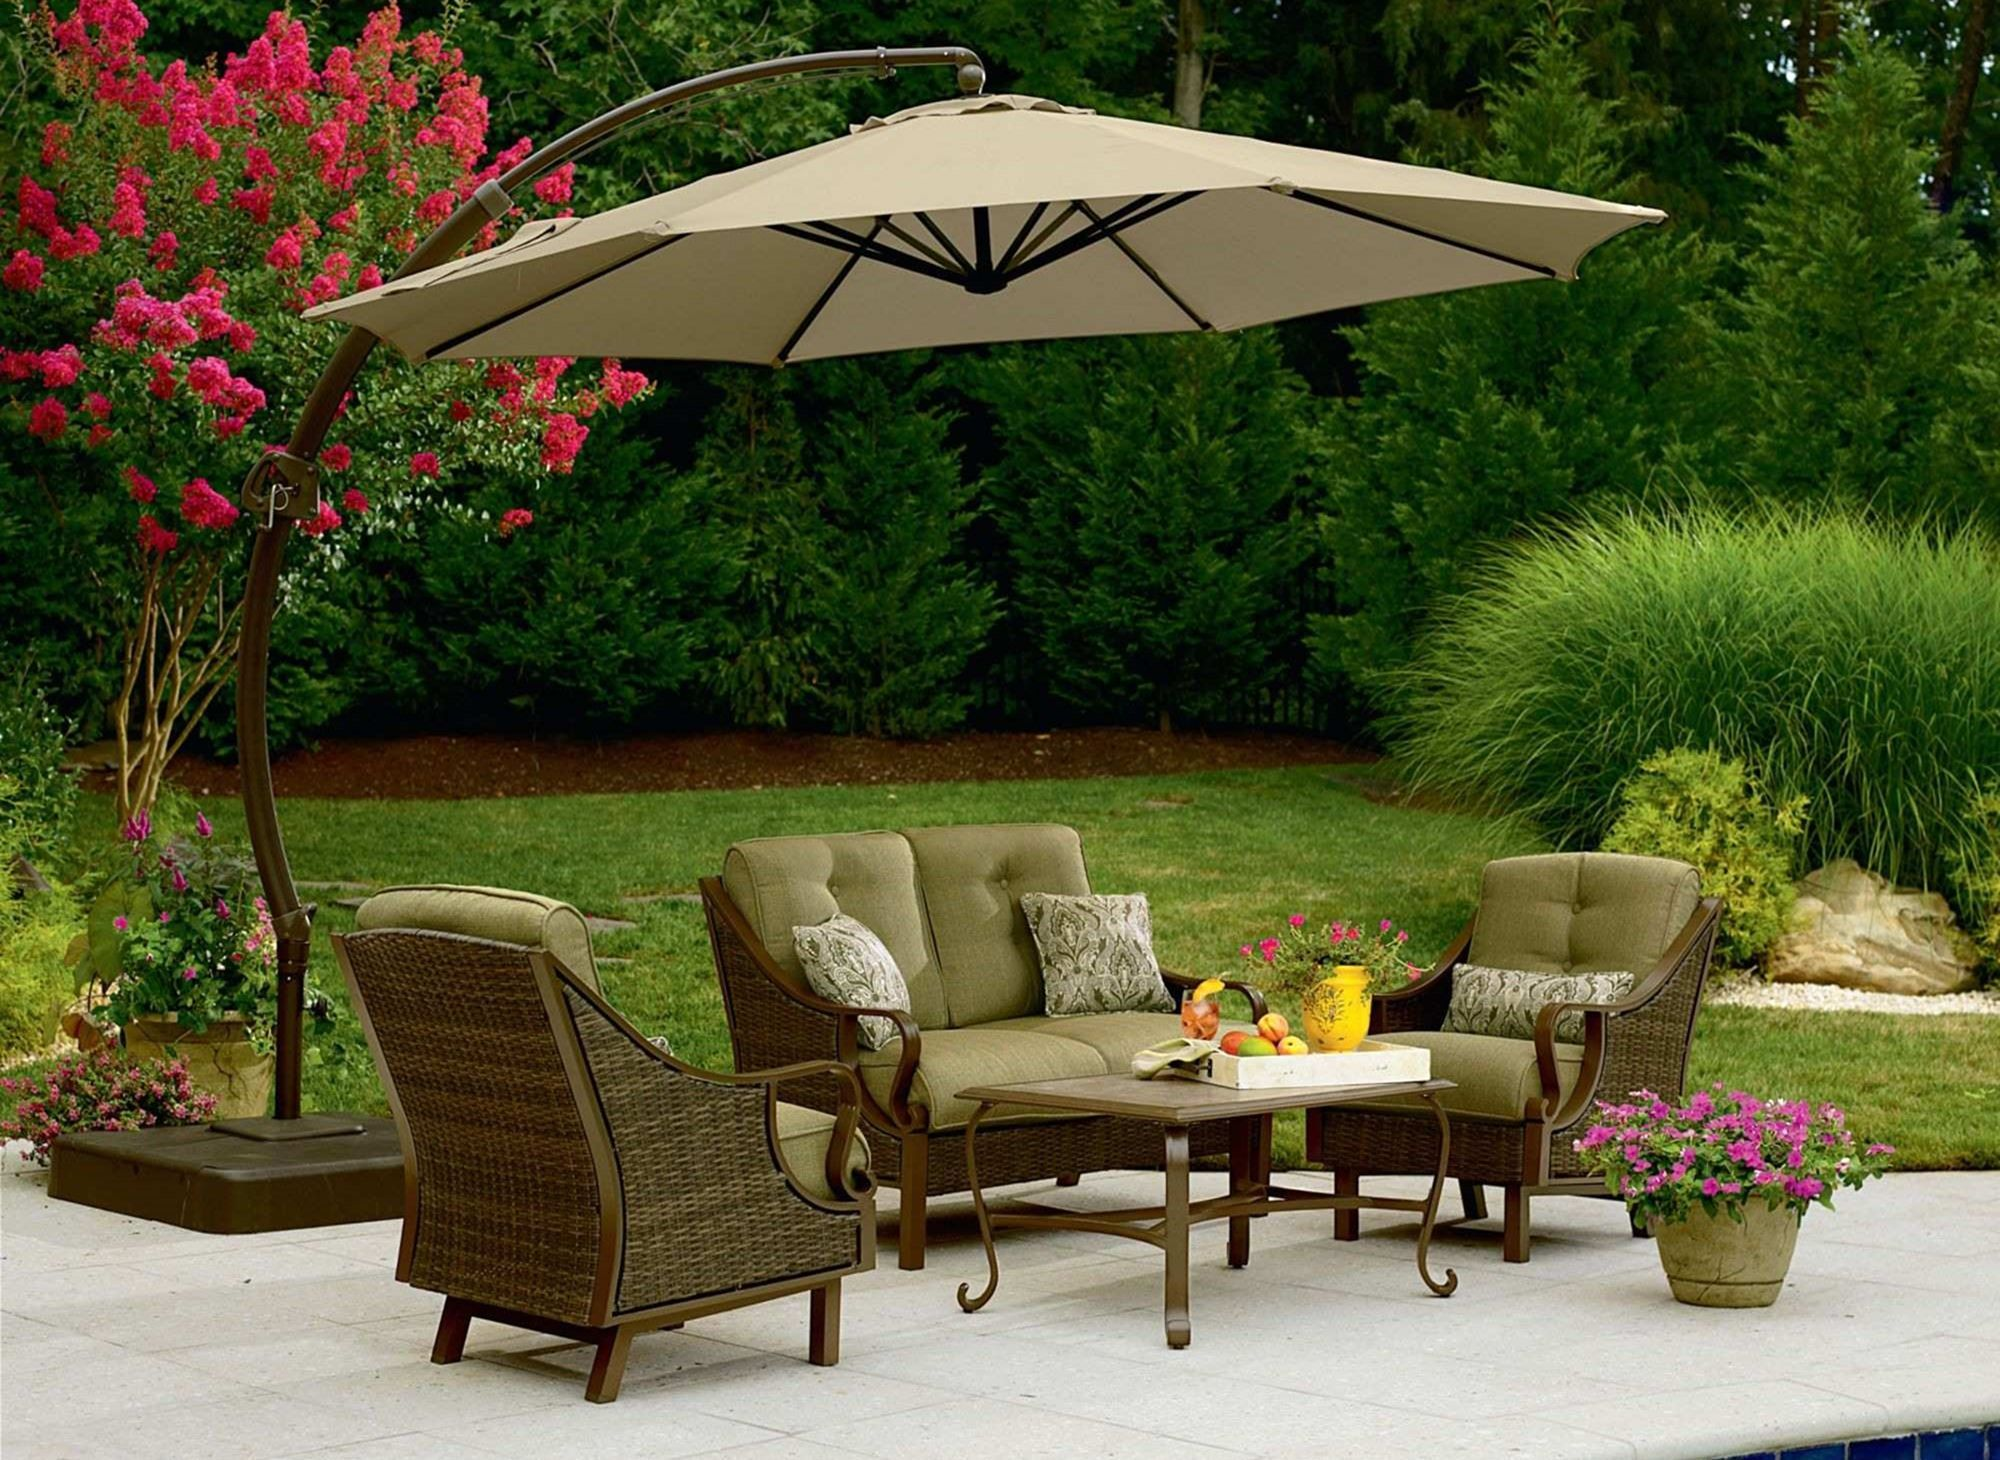 outdoor umbrella clearance on 10 Beautiful And Unique Outdoor Designs For An Amazing Home Look Teracee Patio Umbrella Best Patio Umbrella Outdoor Design